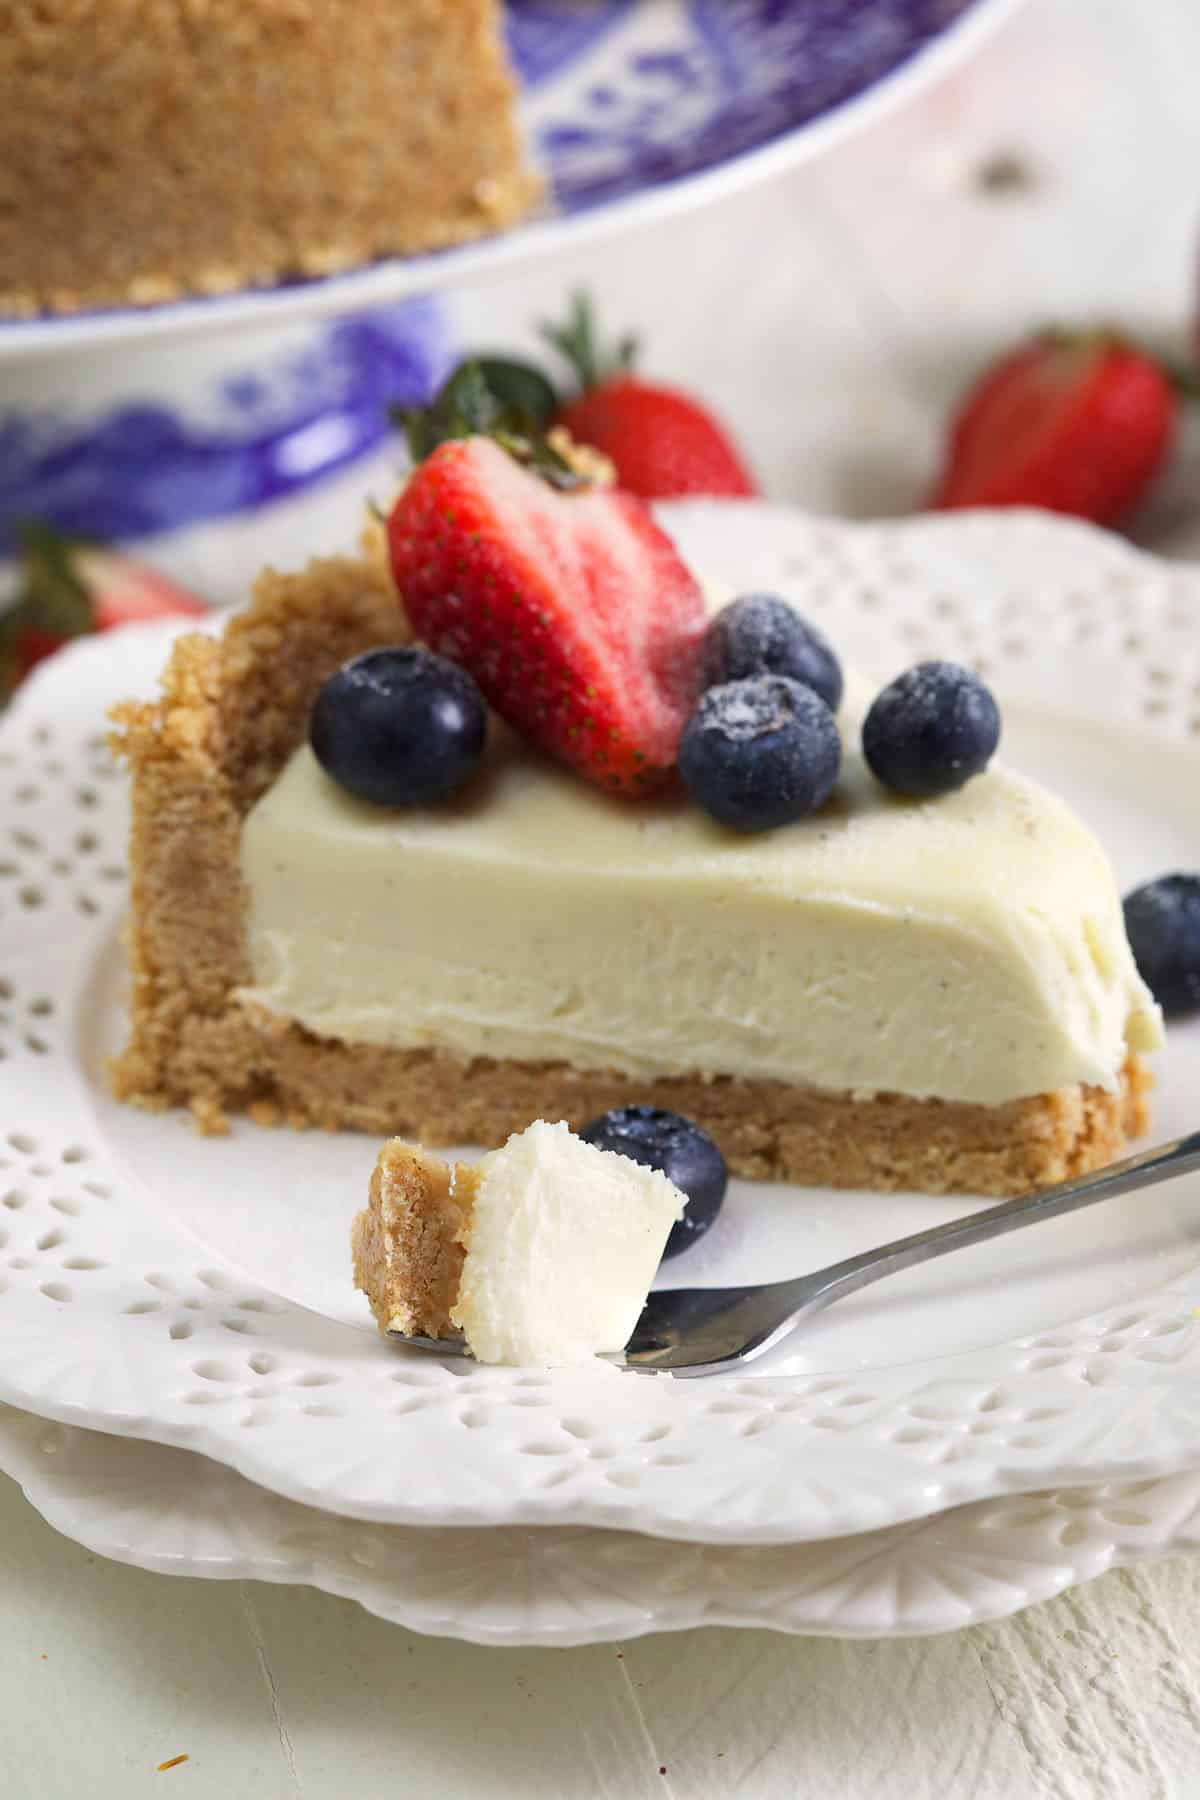 slice of cheesecake on a white plate with a bite on a fork